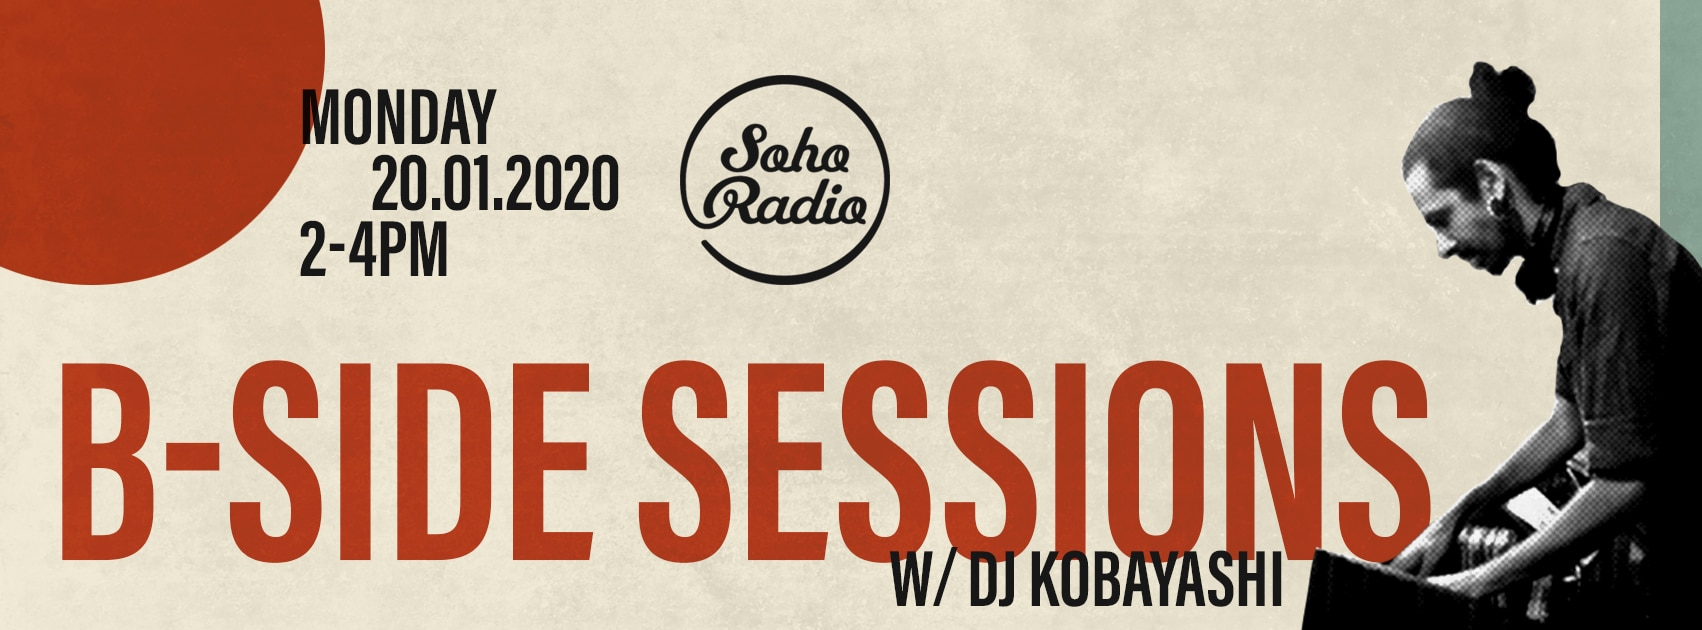 Soho Radio B-side sessions